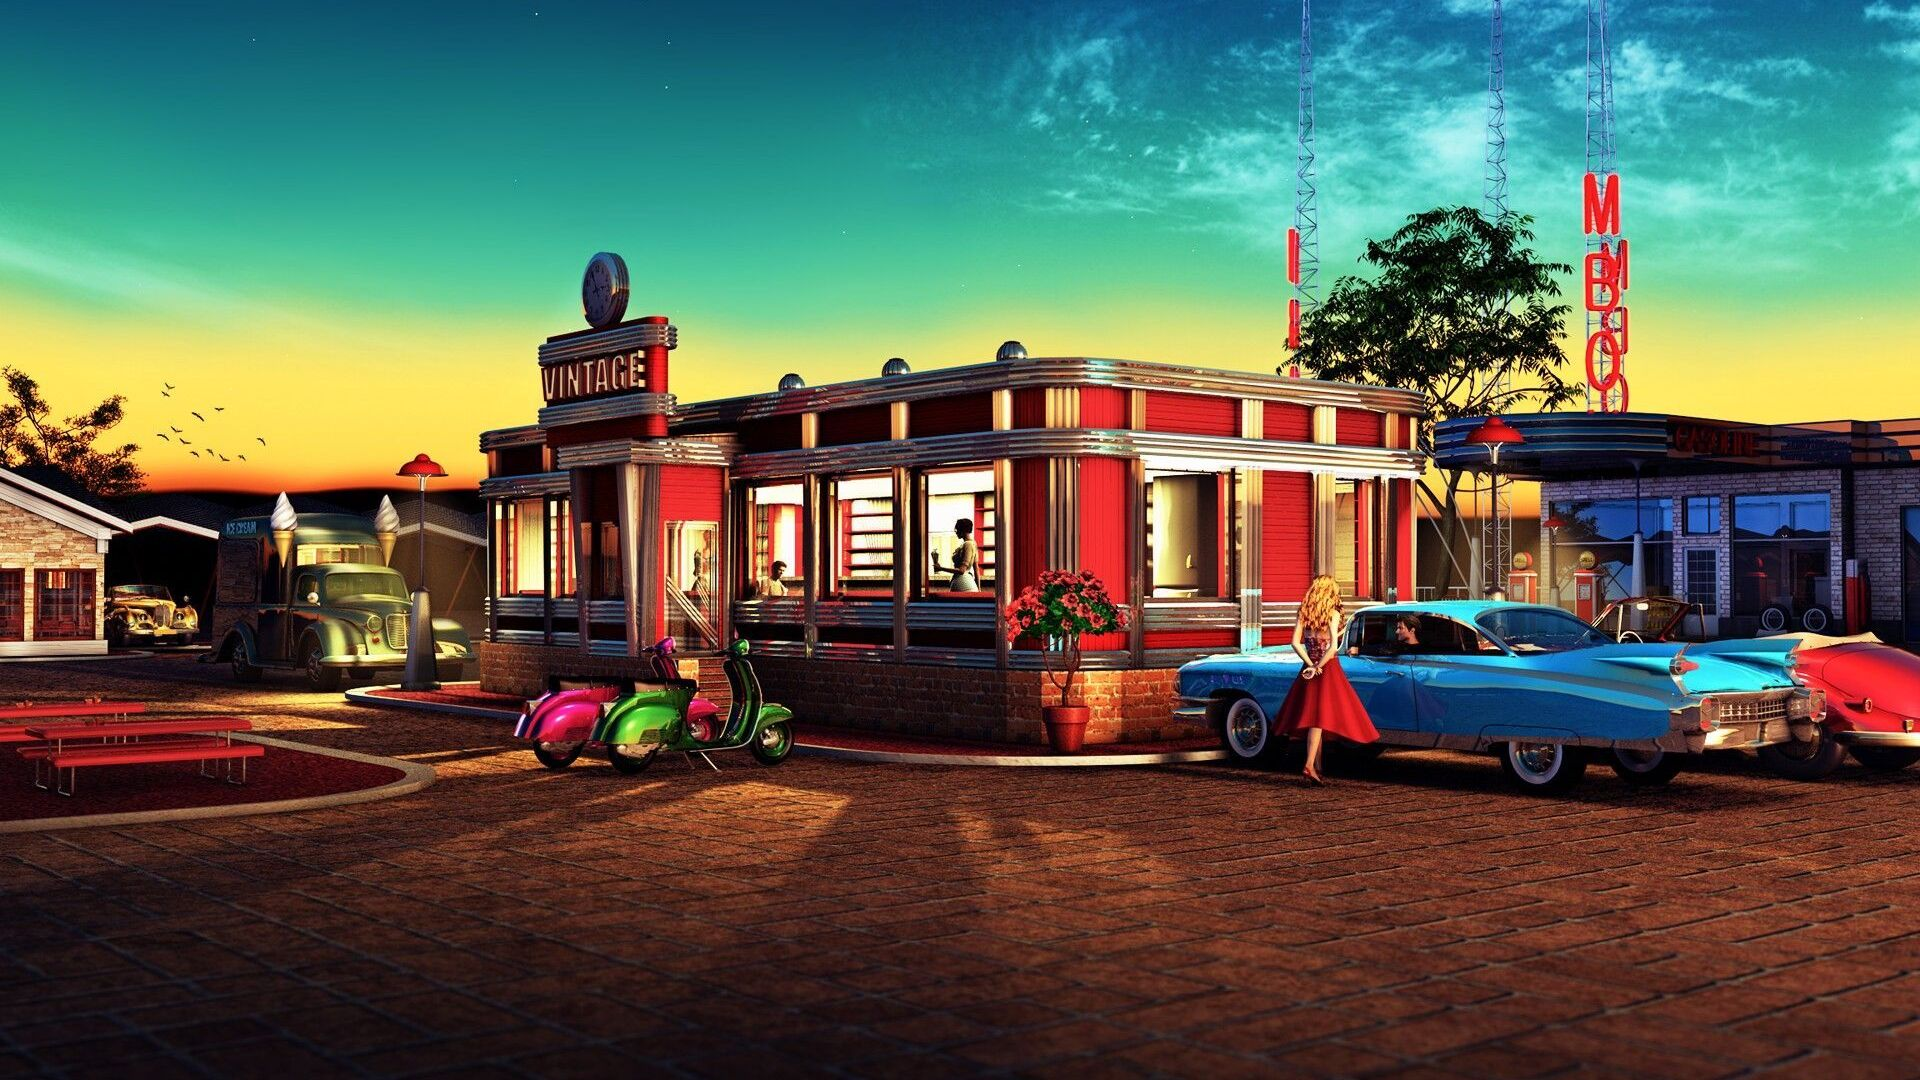 1920x1080 Retro Diner Laptop Full Hd 1080p Hd 4k Wallpapers Images Backgrounds Photos And Pictures